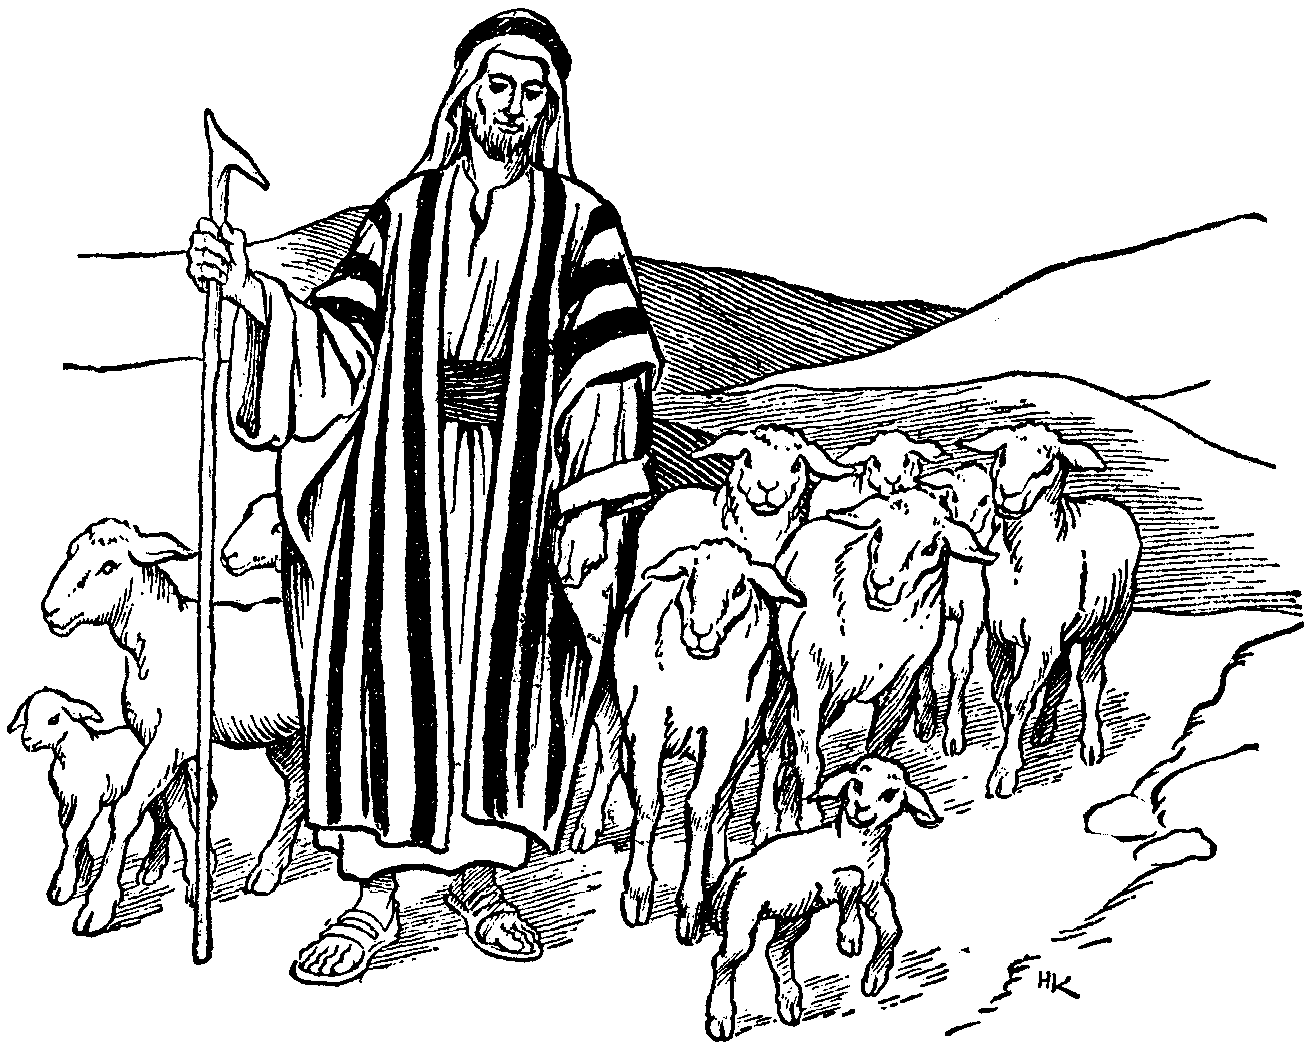 Free Shepherd Cliparts, Download Free Clip Art, Free Clip Art on.